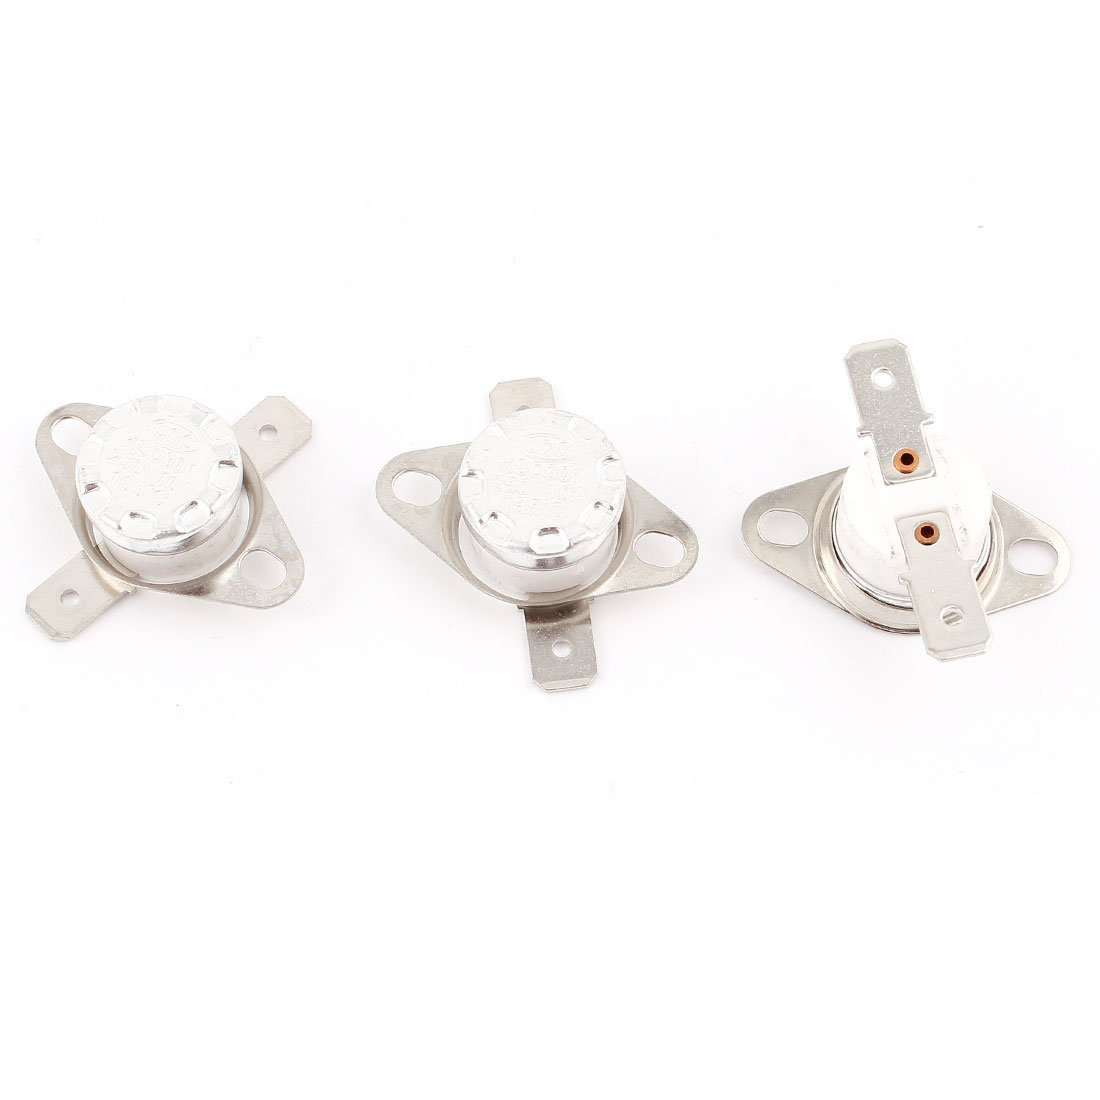 uxcell 3 Pcs KSD301 NC Temperature Switch Thermostat 165 Celsius 250V 10A SYNCF2004855